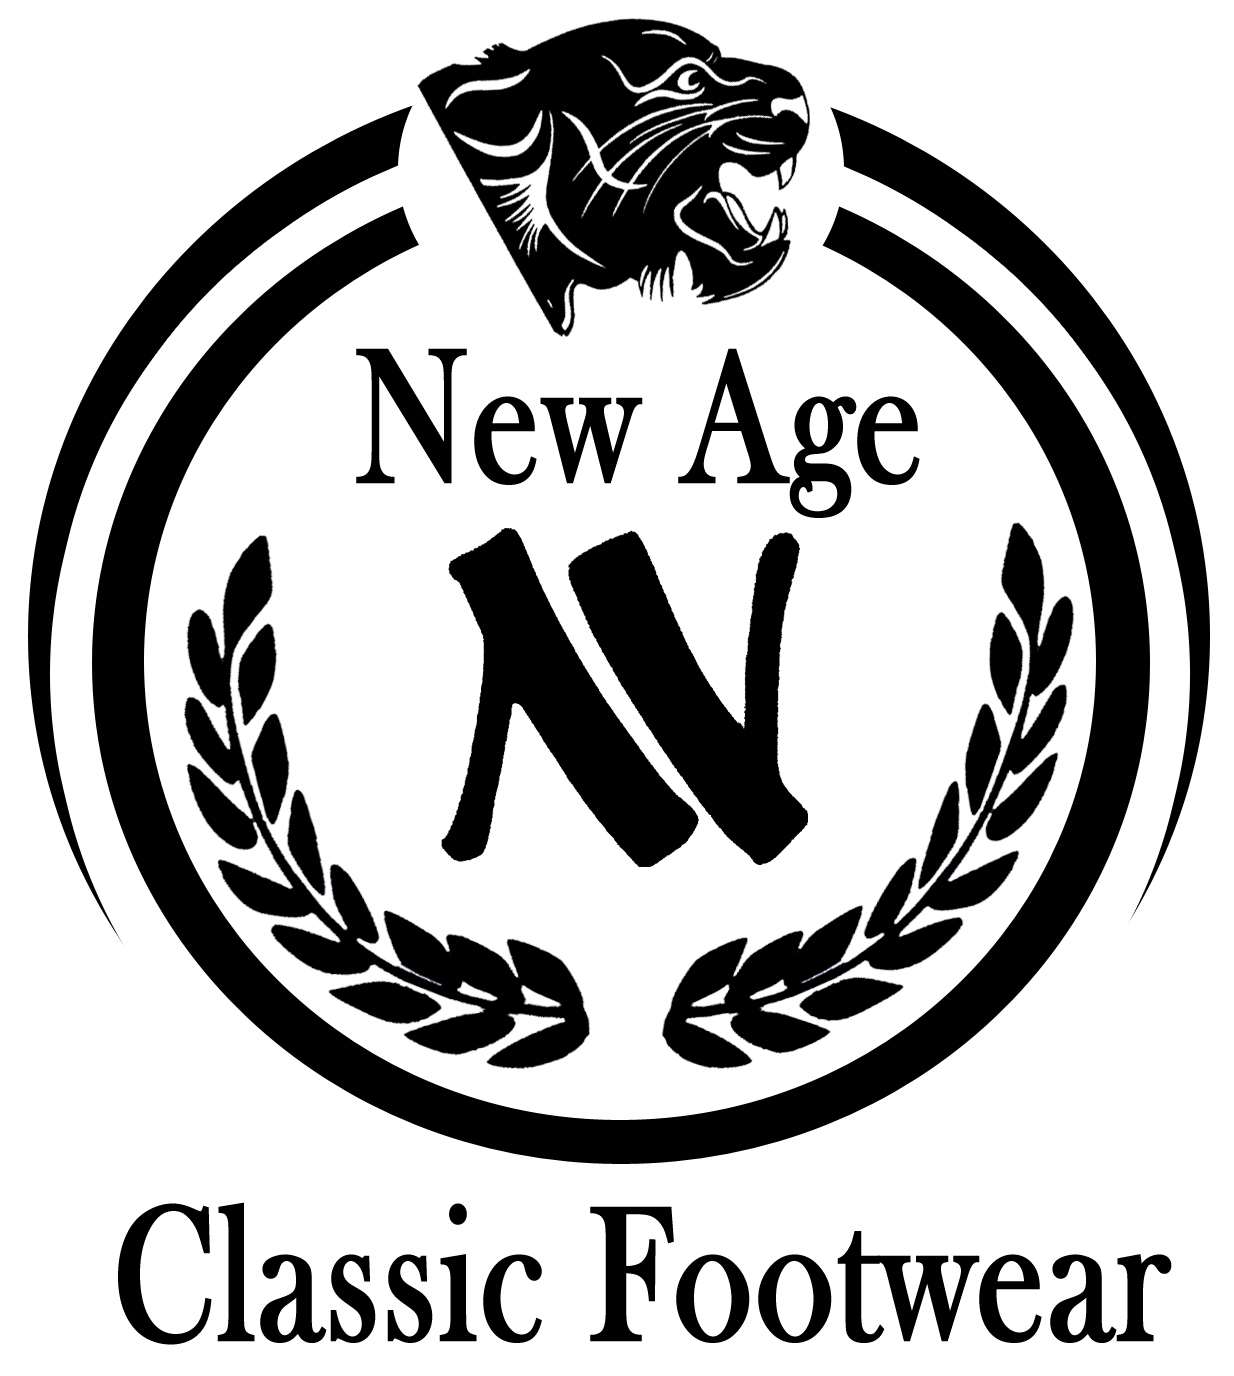 new age classic footwear